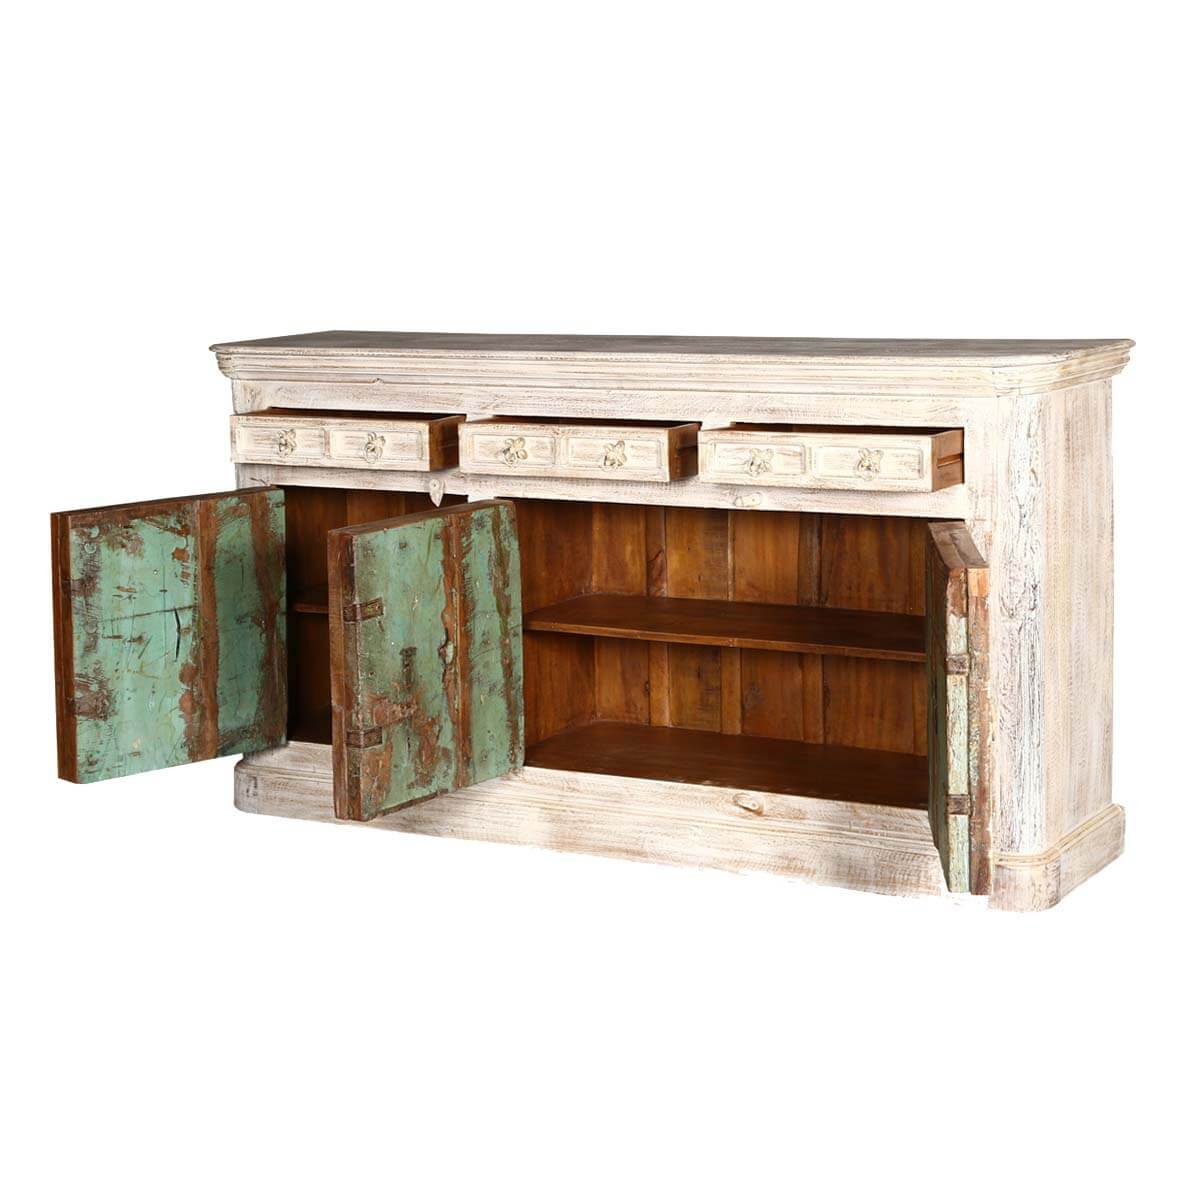 Palazzo Rustic Distressed Reclaimed Wood 3 Drawer Large